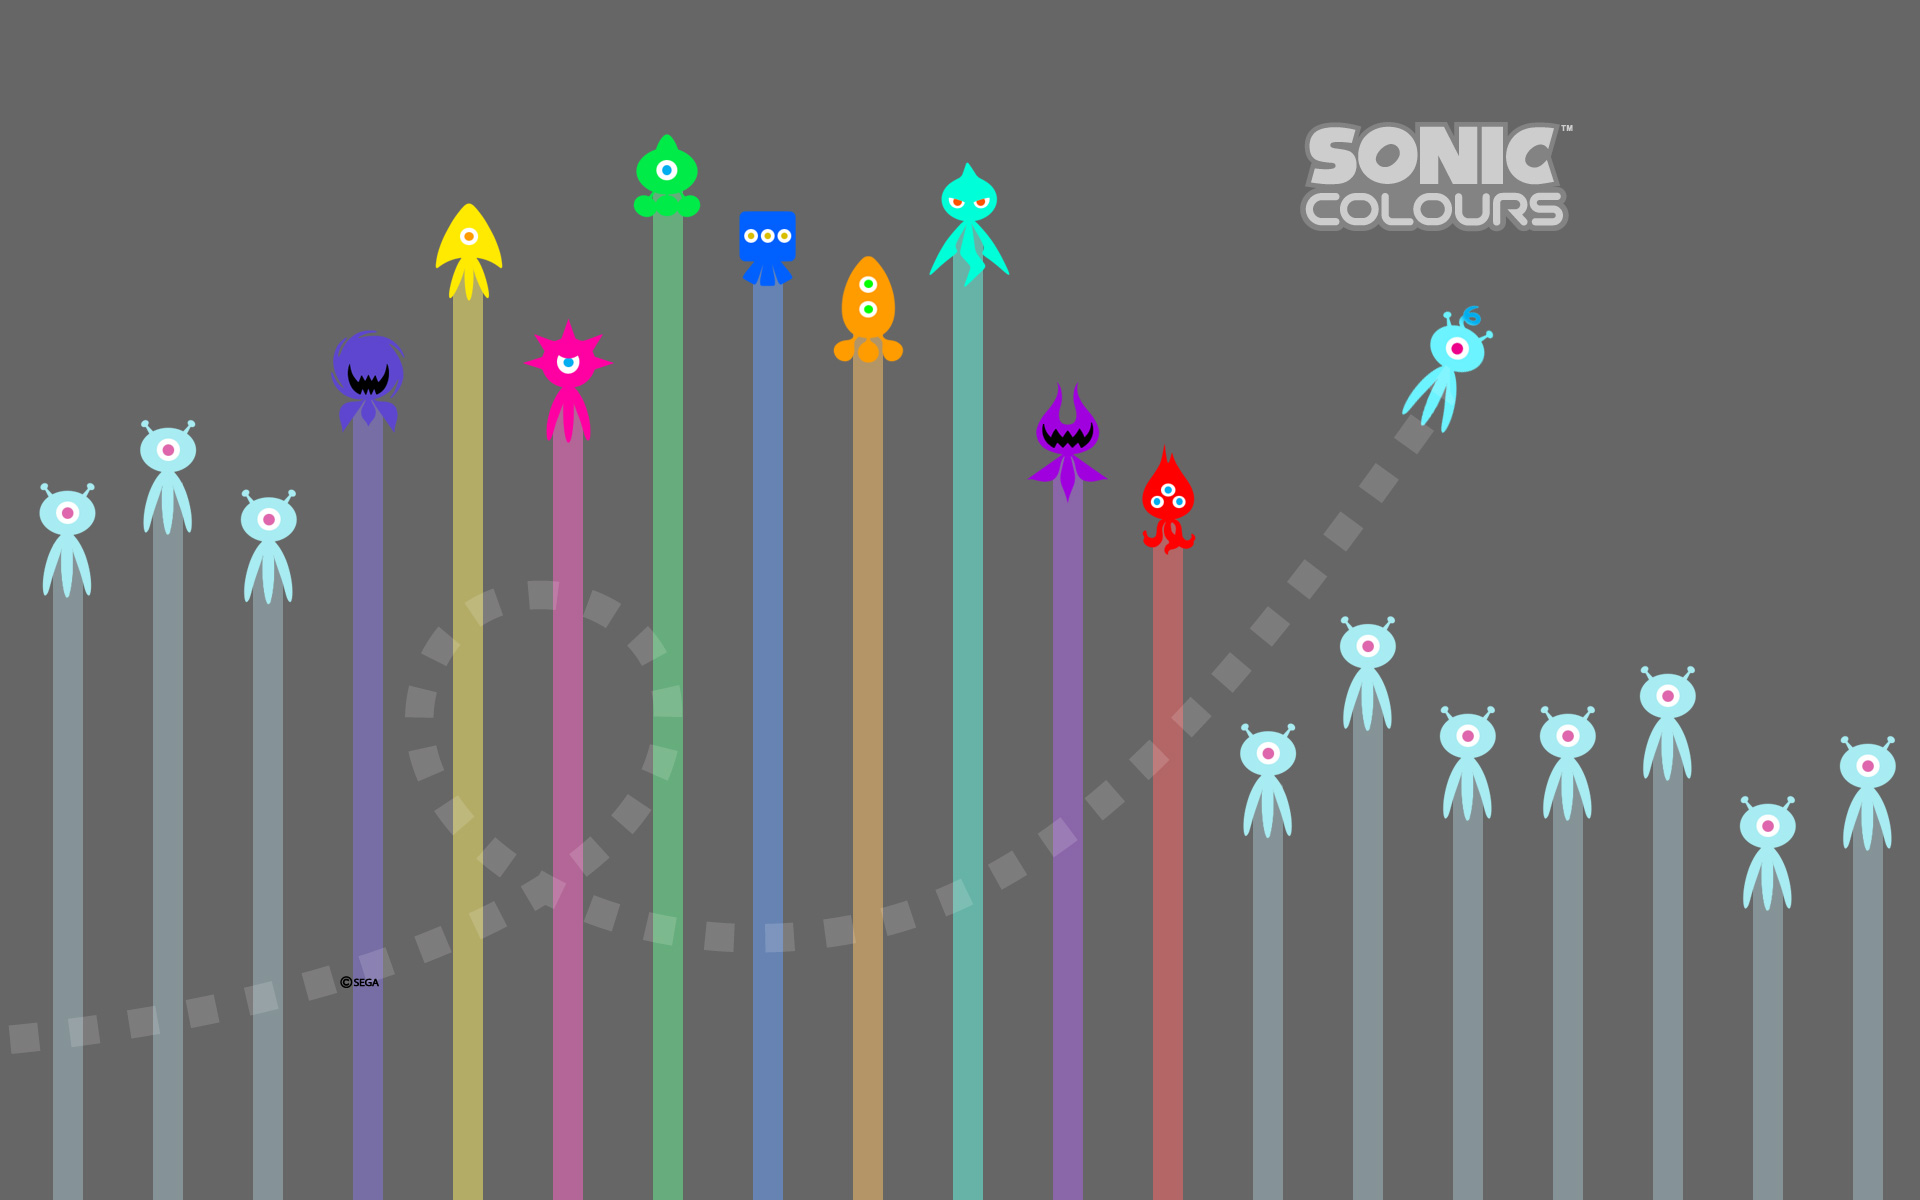 Sonic Colours Wallpaper, EU version